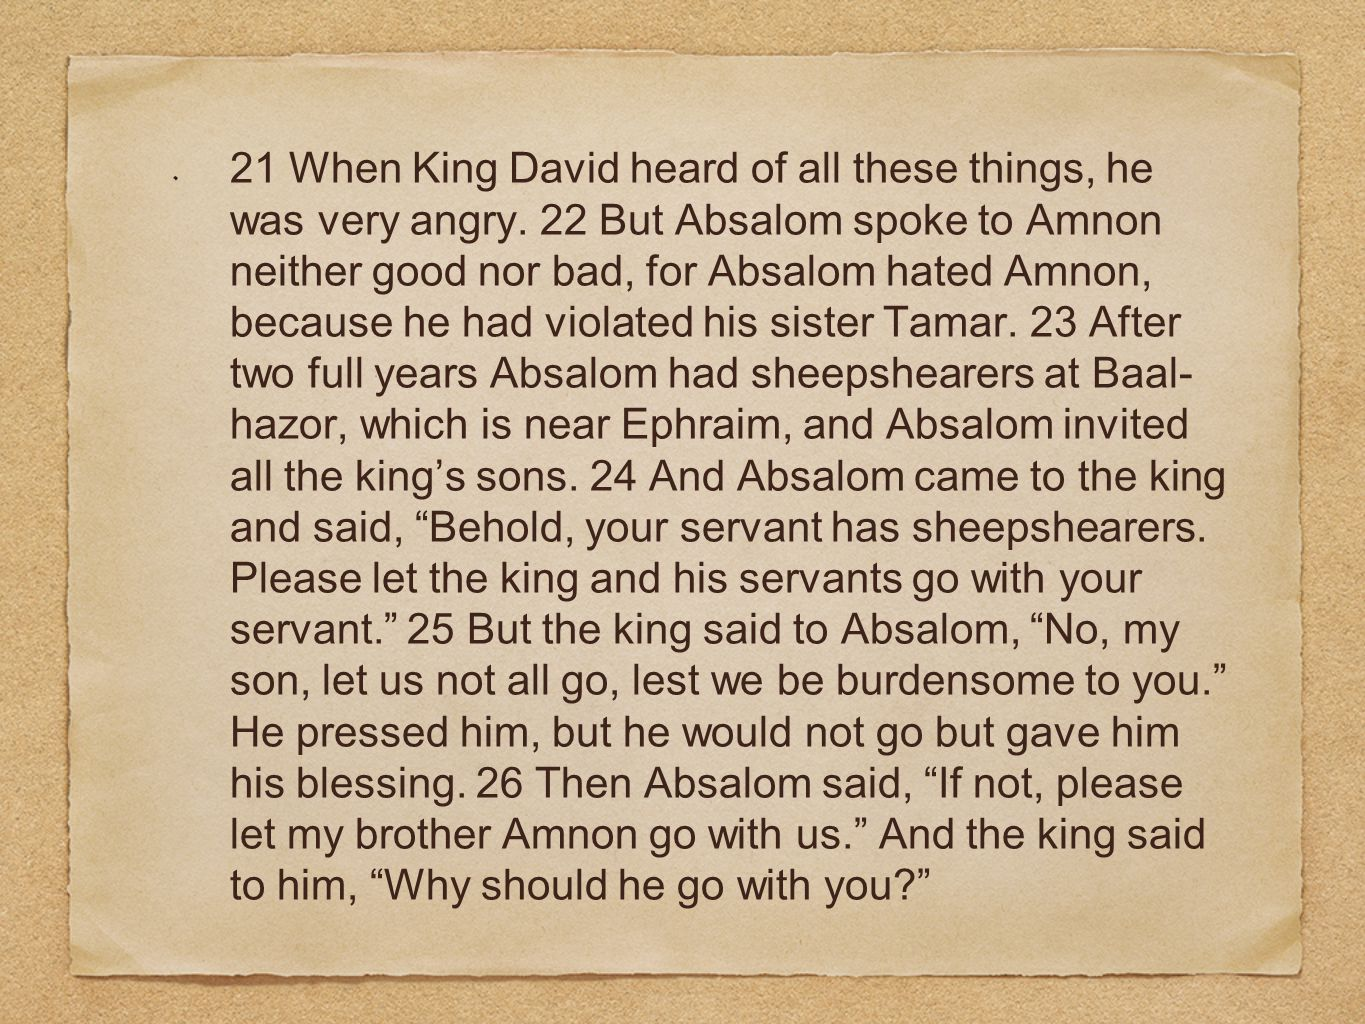 21 When King David heard of all these things, he was very angry.